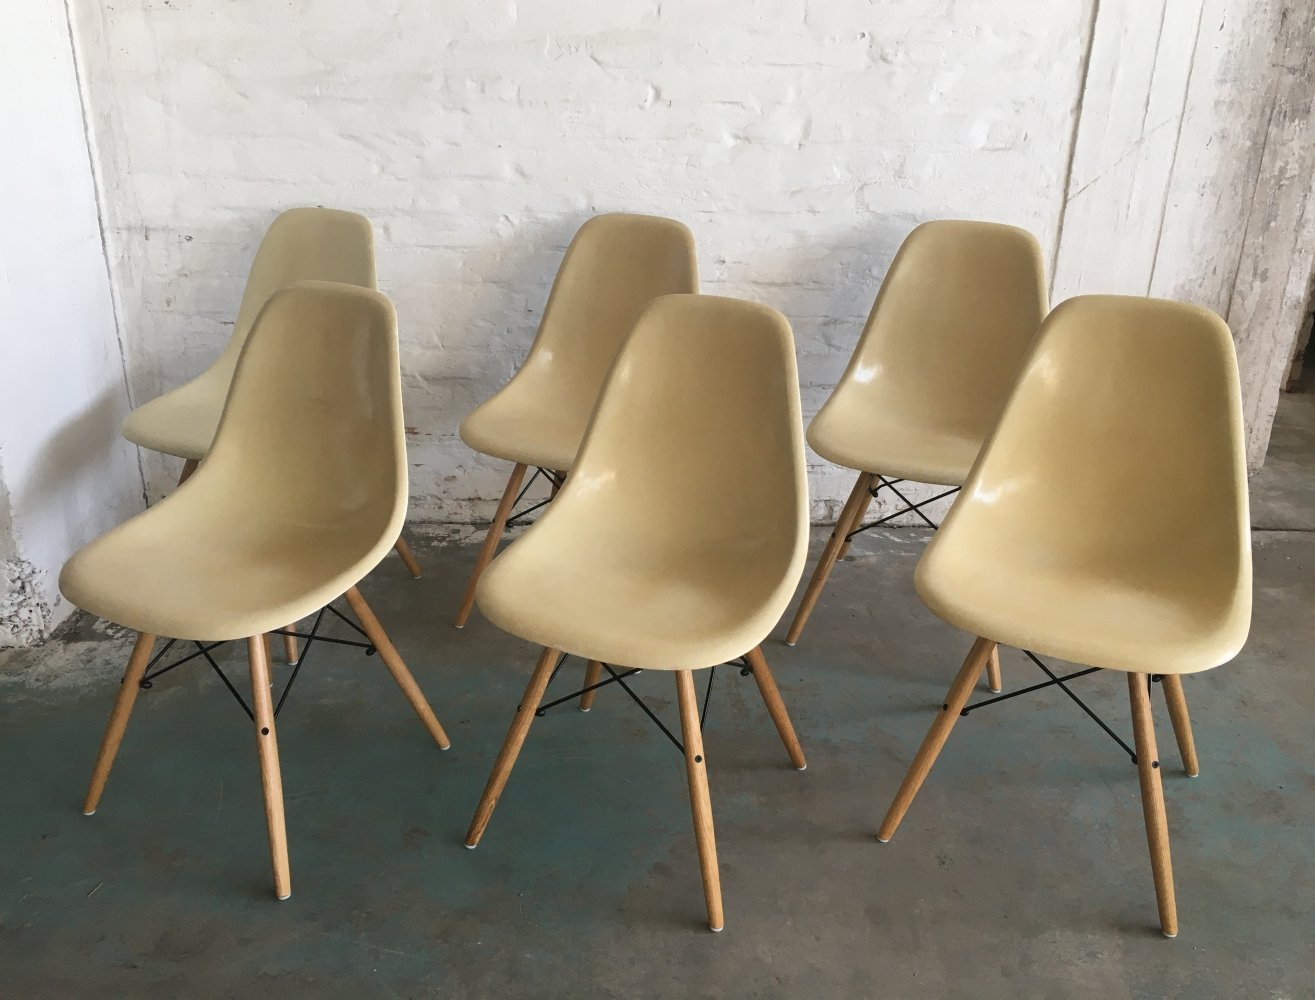 Set of 6 dining chairs by Charles & Ray Eames for Herman Miller, 1960s